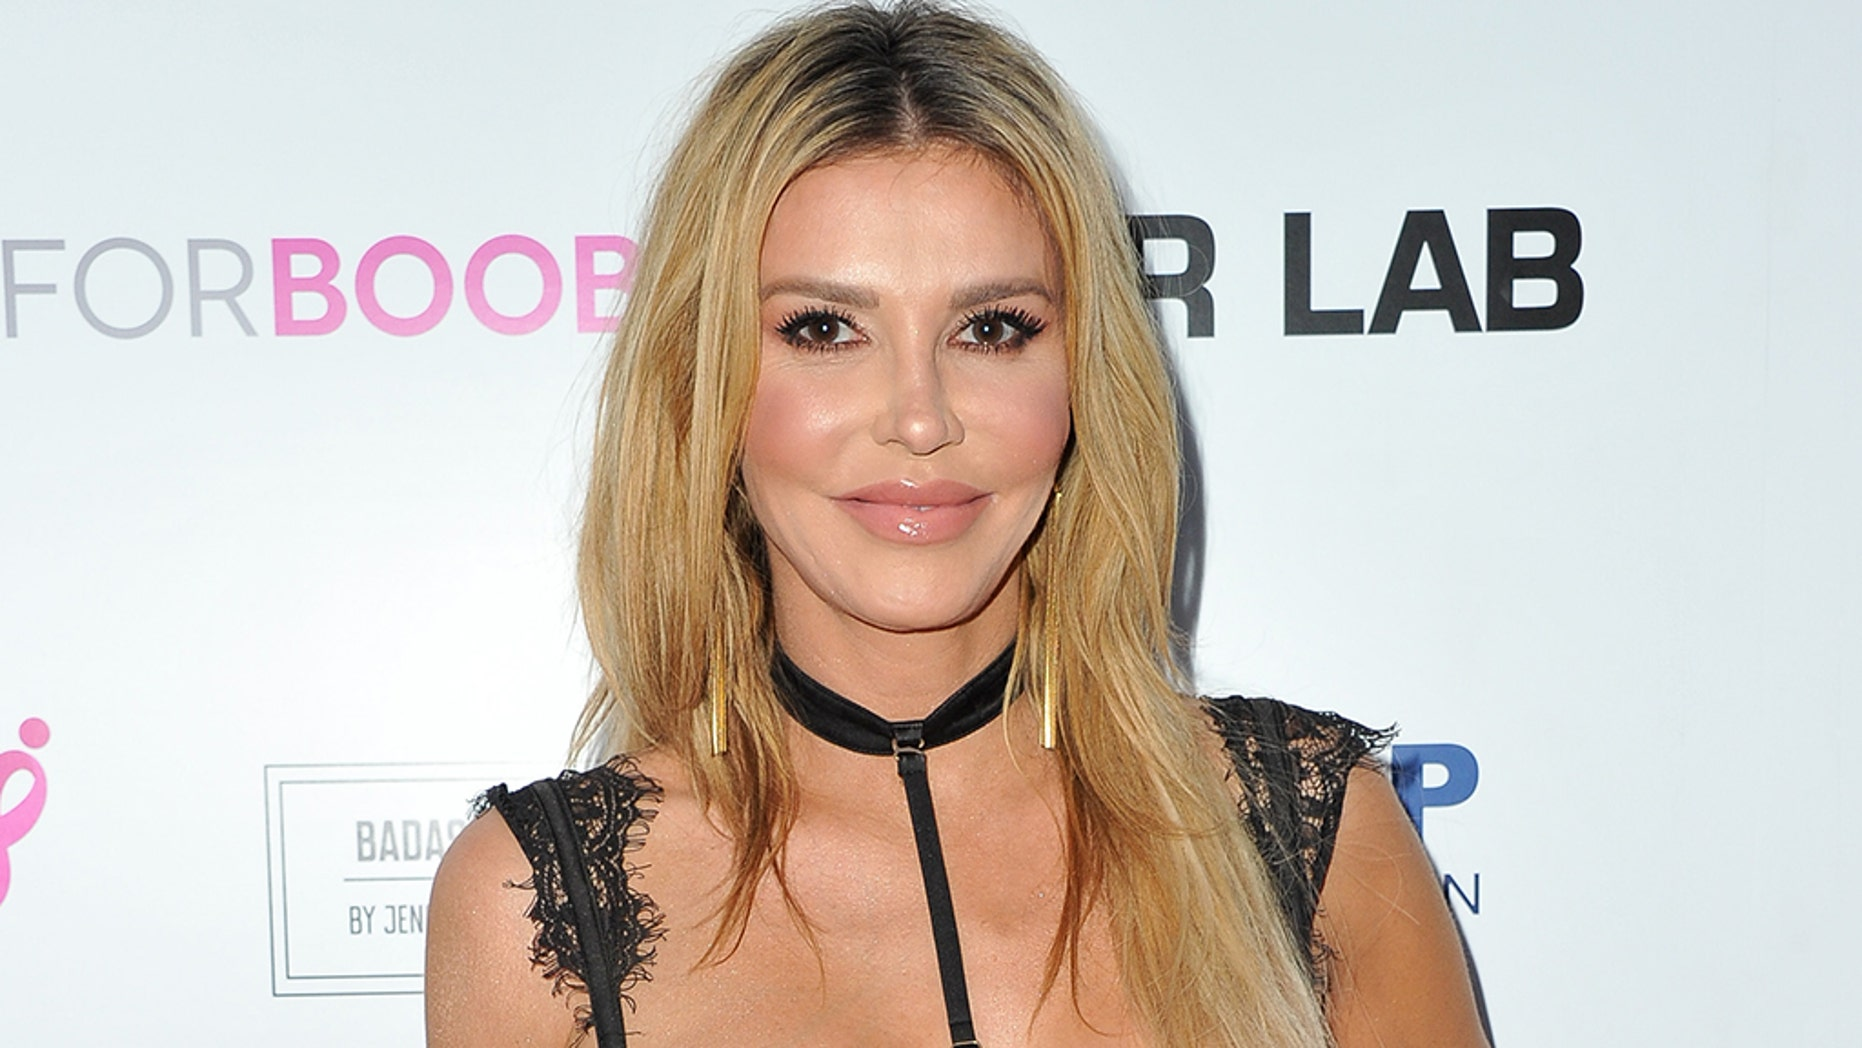 Brandi Glanville has been accused of assaulting an actor while attending the Casamigos Halloween Party in Beverly Hills on Friday.